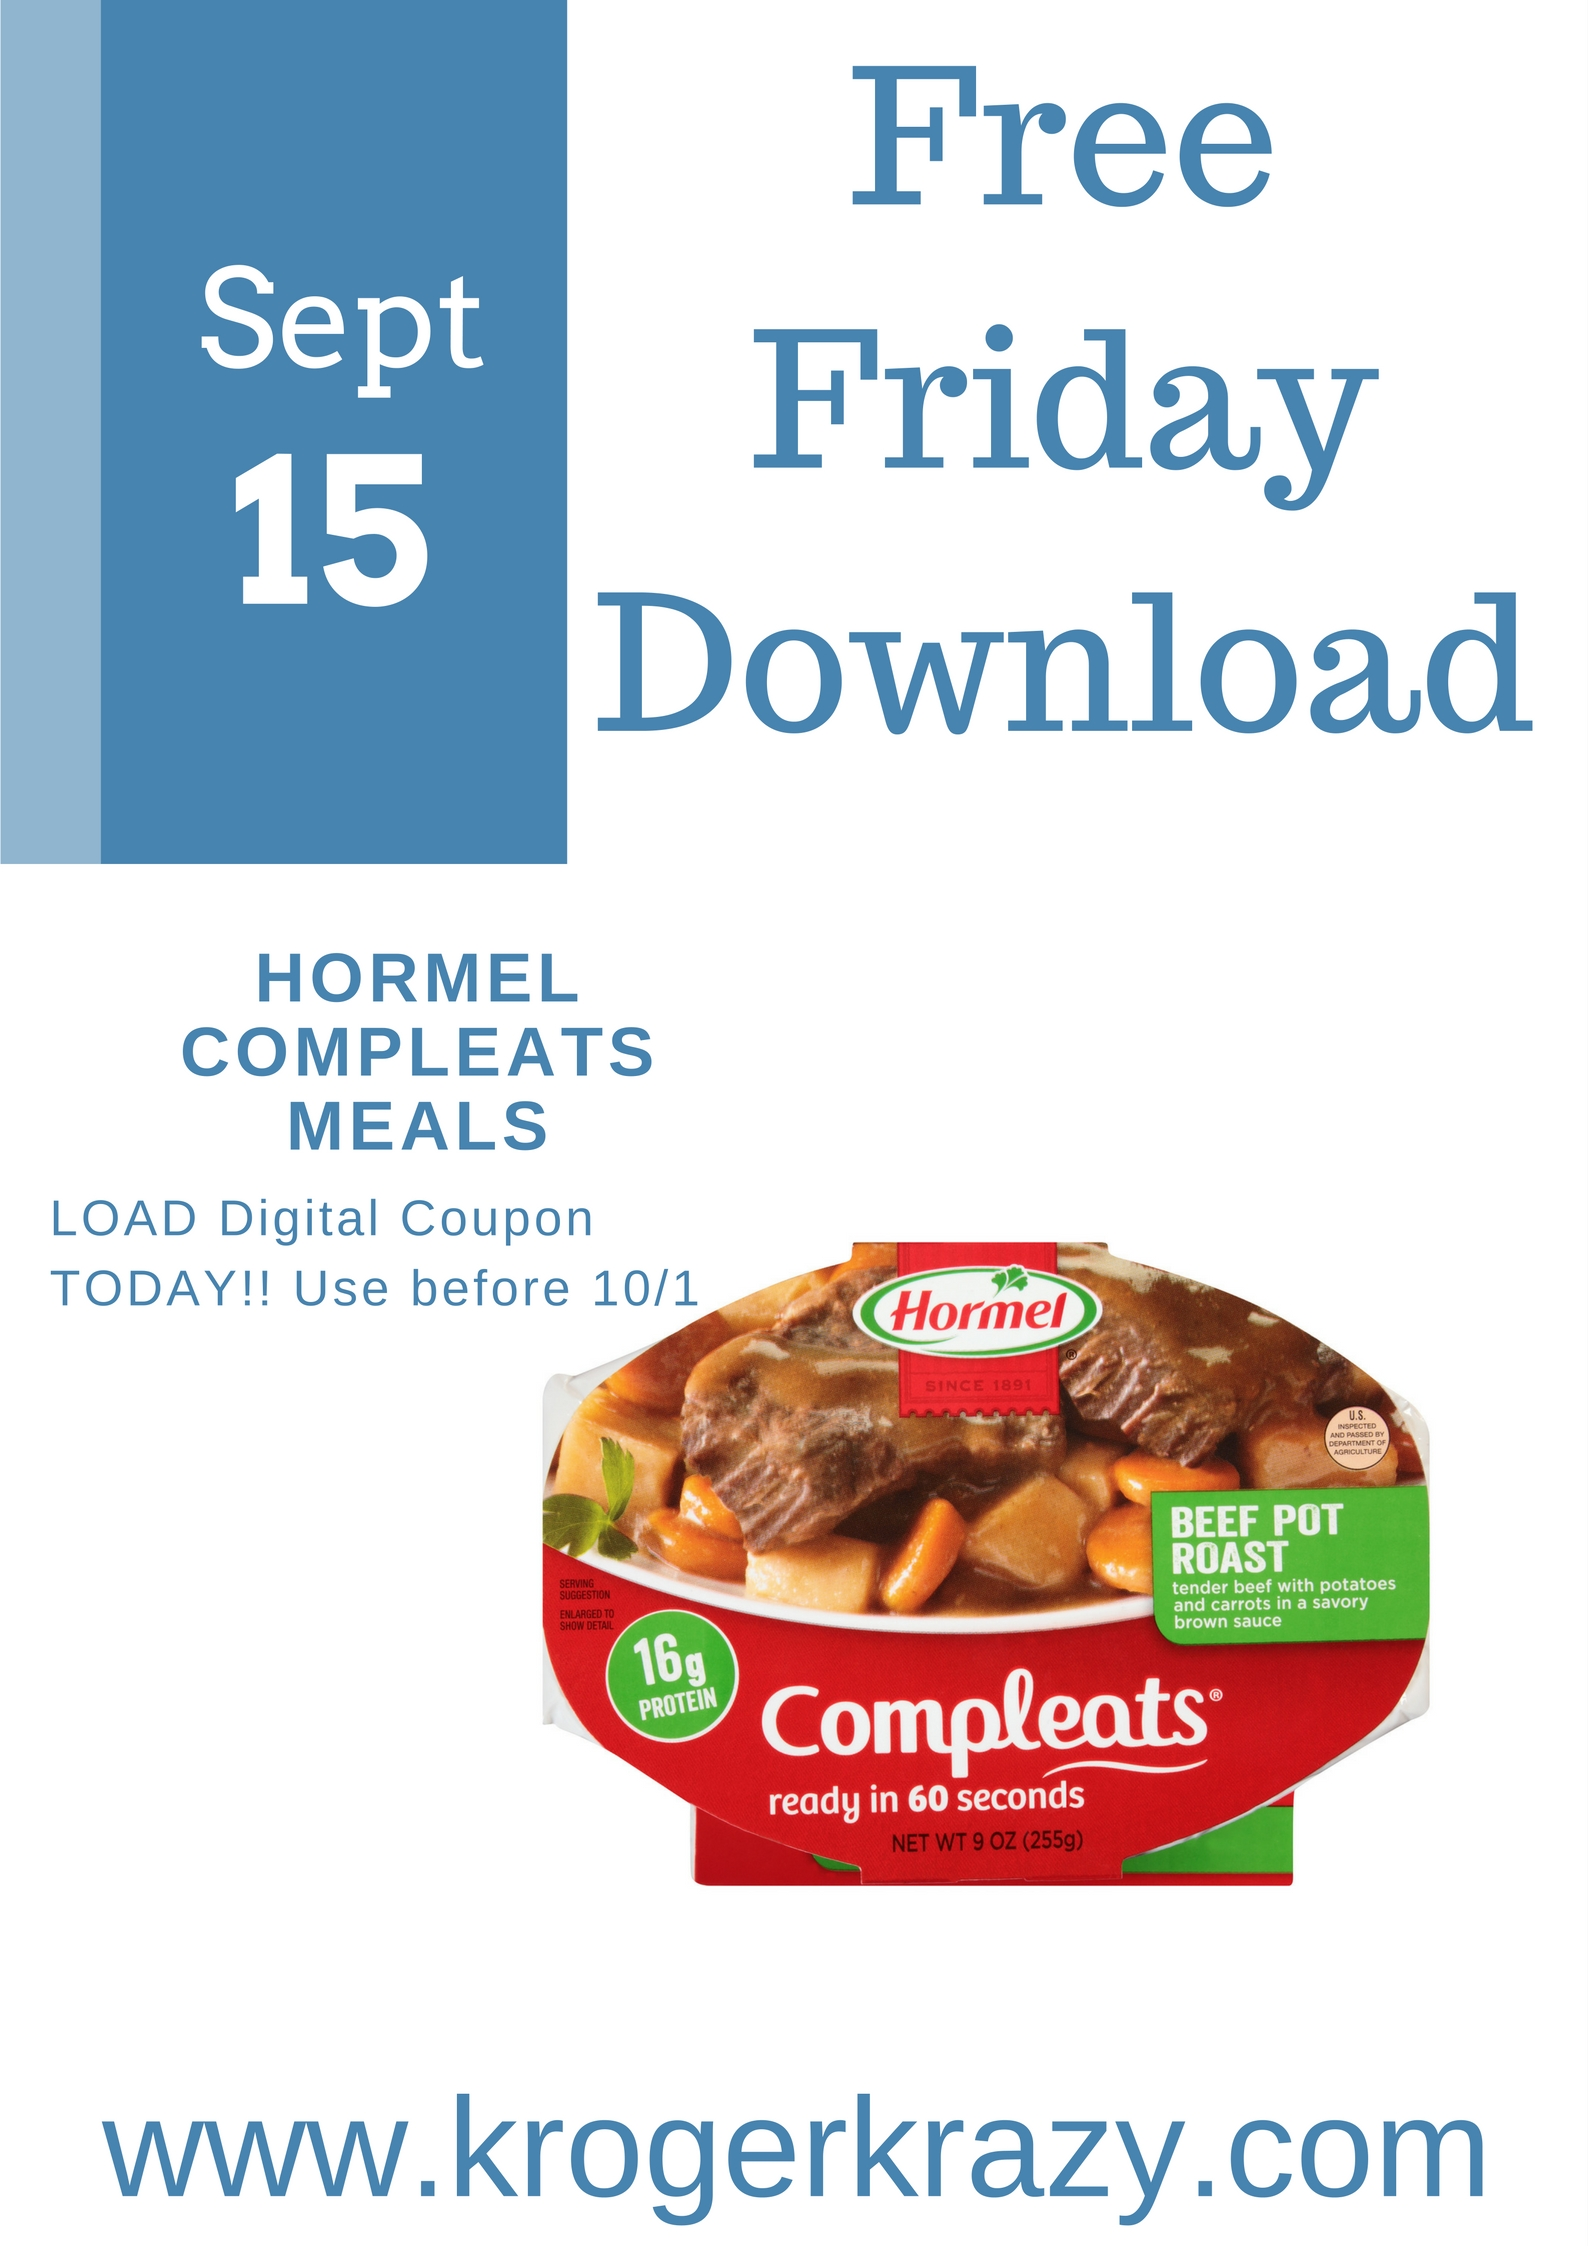 Fr Frys Food Store Digital Coupons - Today friday september 15th only download a digital coupon for a free hormel compleats microwave meal 7 5 13 oz